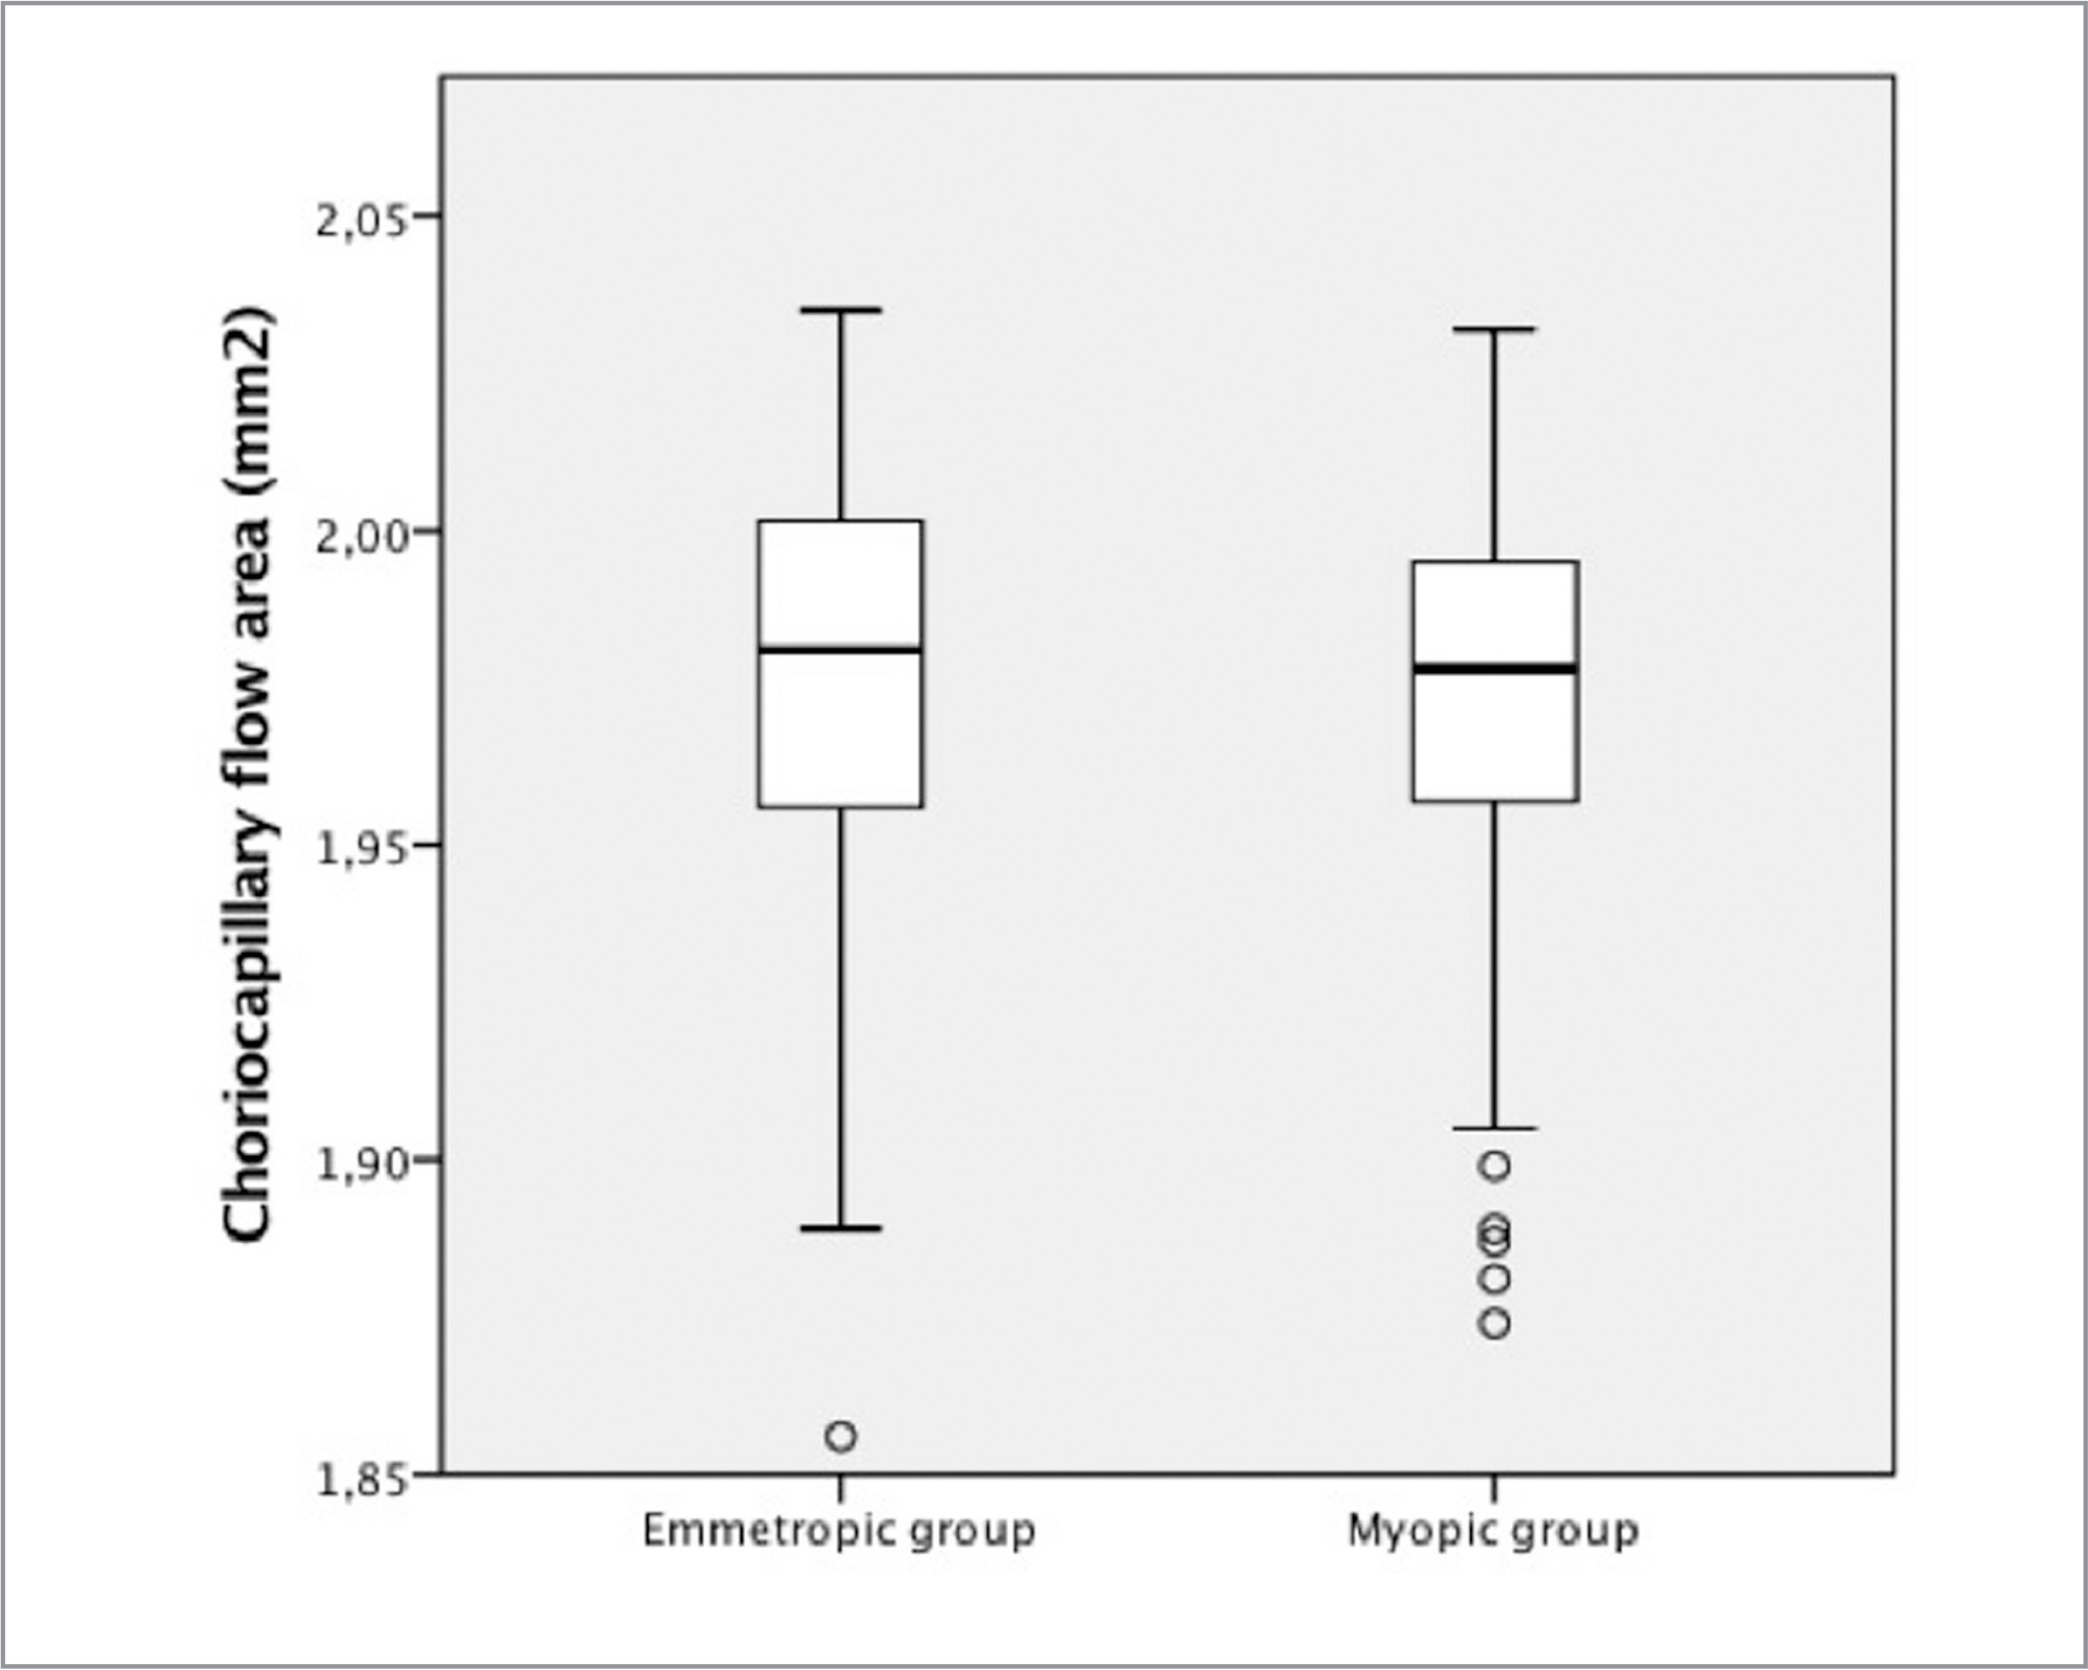 Boxplots showing the choriocapillary blood flow area in the myopic group and the emmetropic control group. The blood flow area in the emmetropic group was 1.980 ± 0.034 mm2. The blood flow area in the myopic group was 1.970 ± 0.035 mm2. The mean difference lay at −0.006 mm2 with a 95 % confidence interval ranging from −0.018 mm2 to 0.005 mm2 with a corresponding P value of .266.